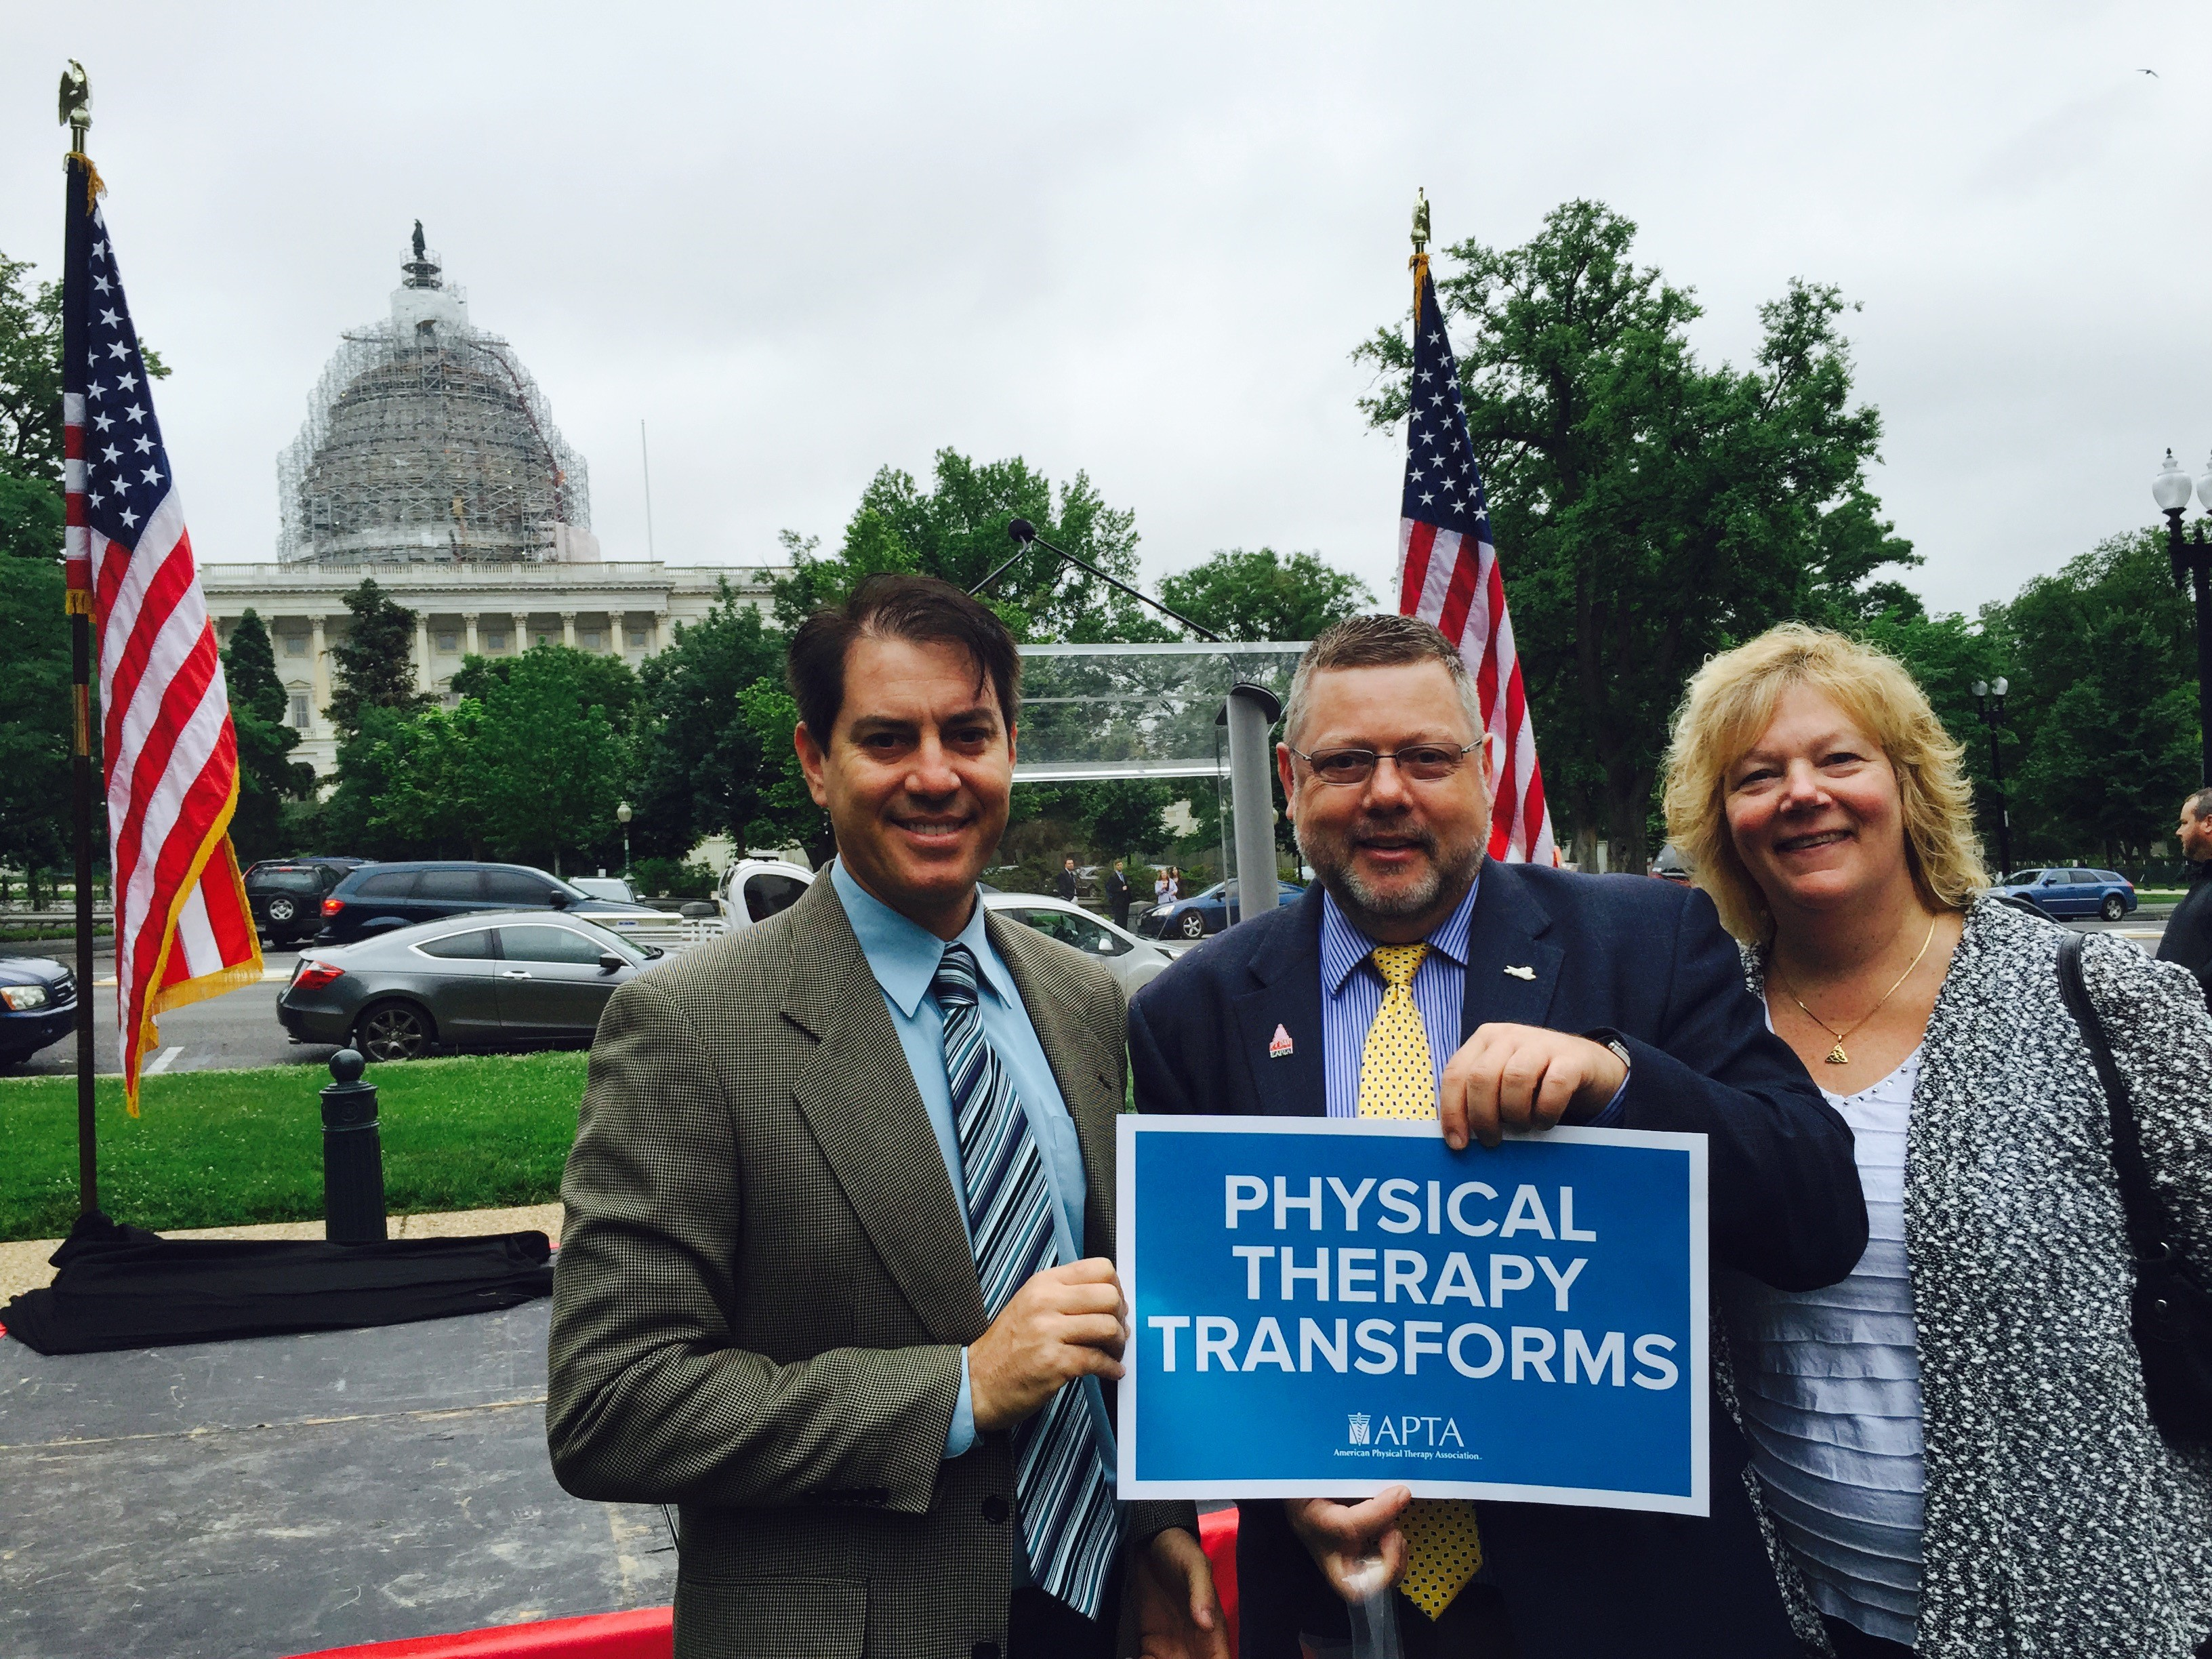 Arizona physical therapy association - Dr Eric Shamus Dr Arie Van Duijn Dr Kathy Swanick At Washington Dc For Physical Therapy Day At The Hill